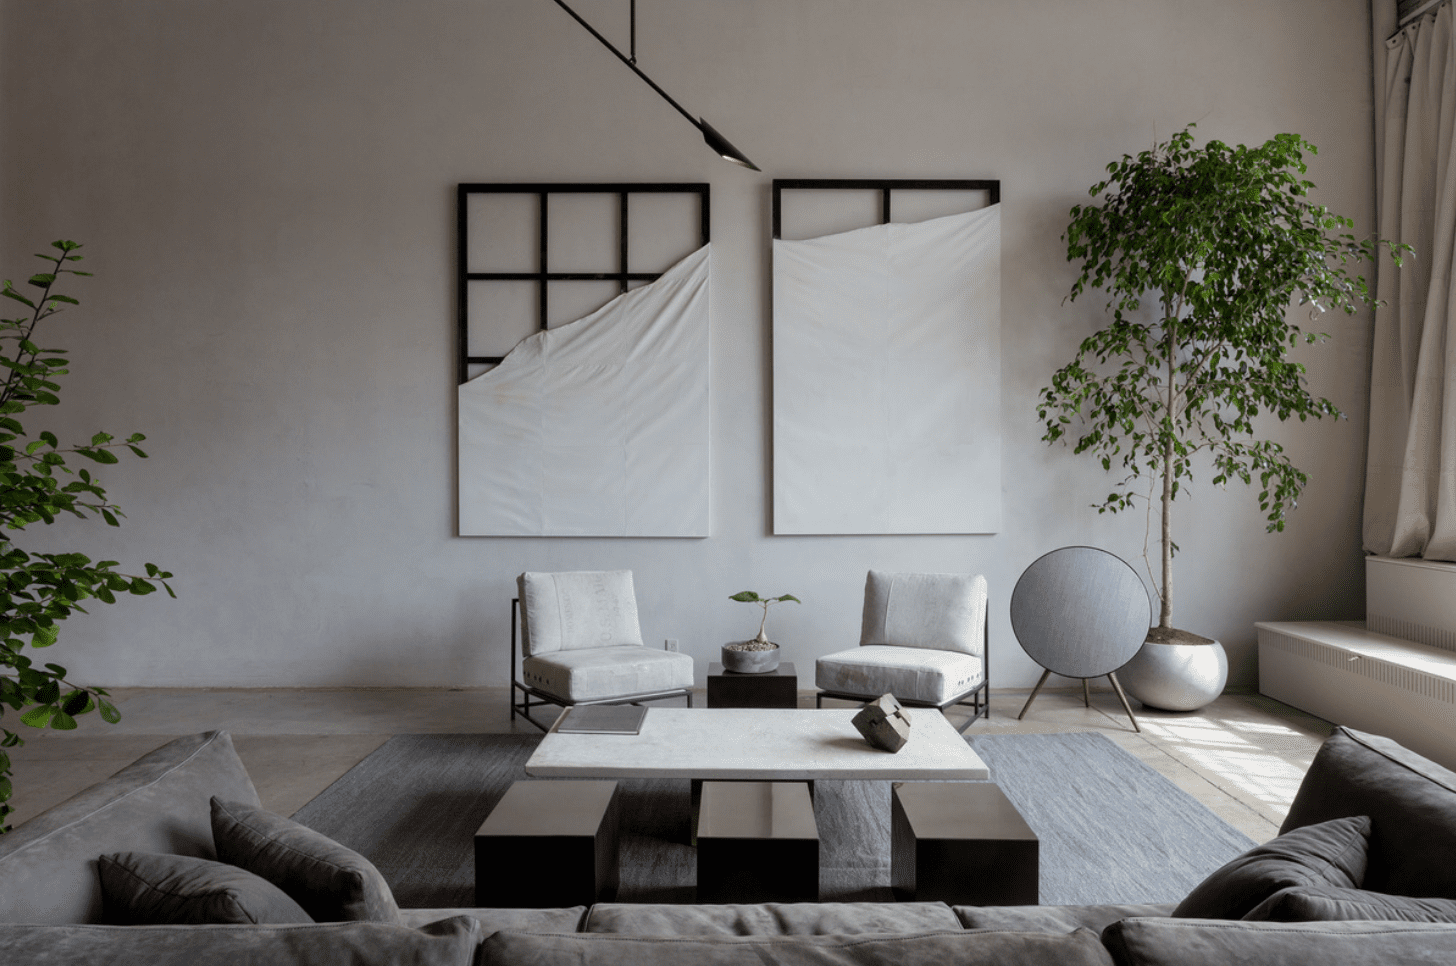 A living room with large bare walls decorated with metal frames draped with fabric